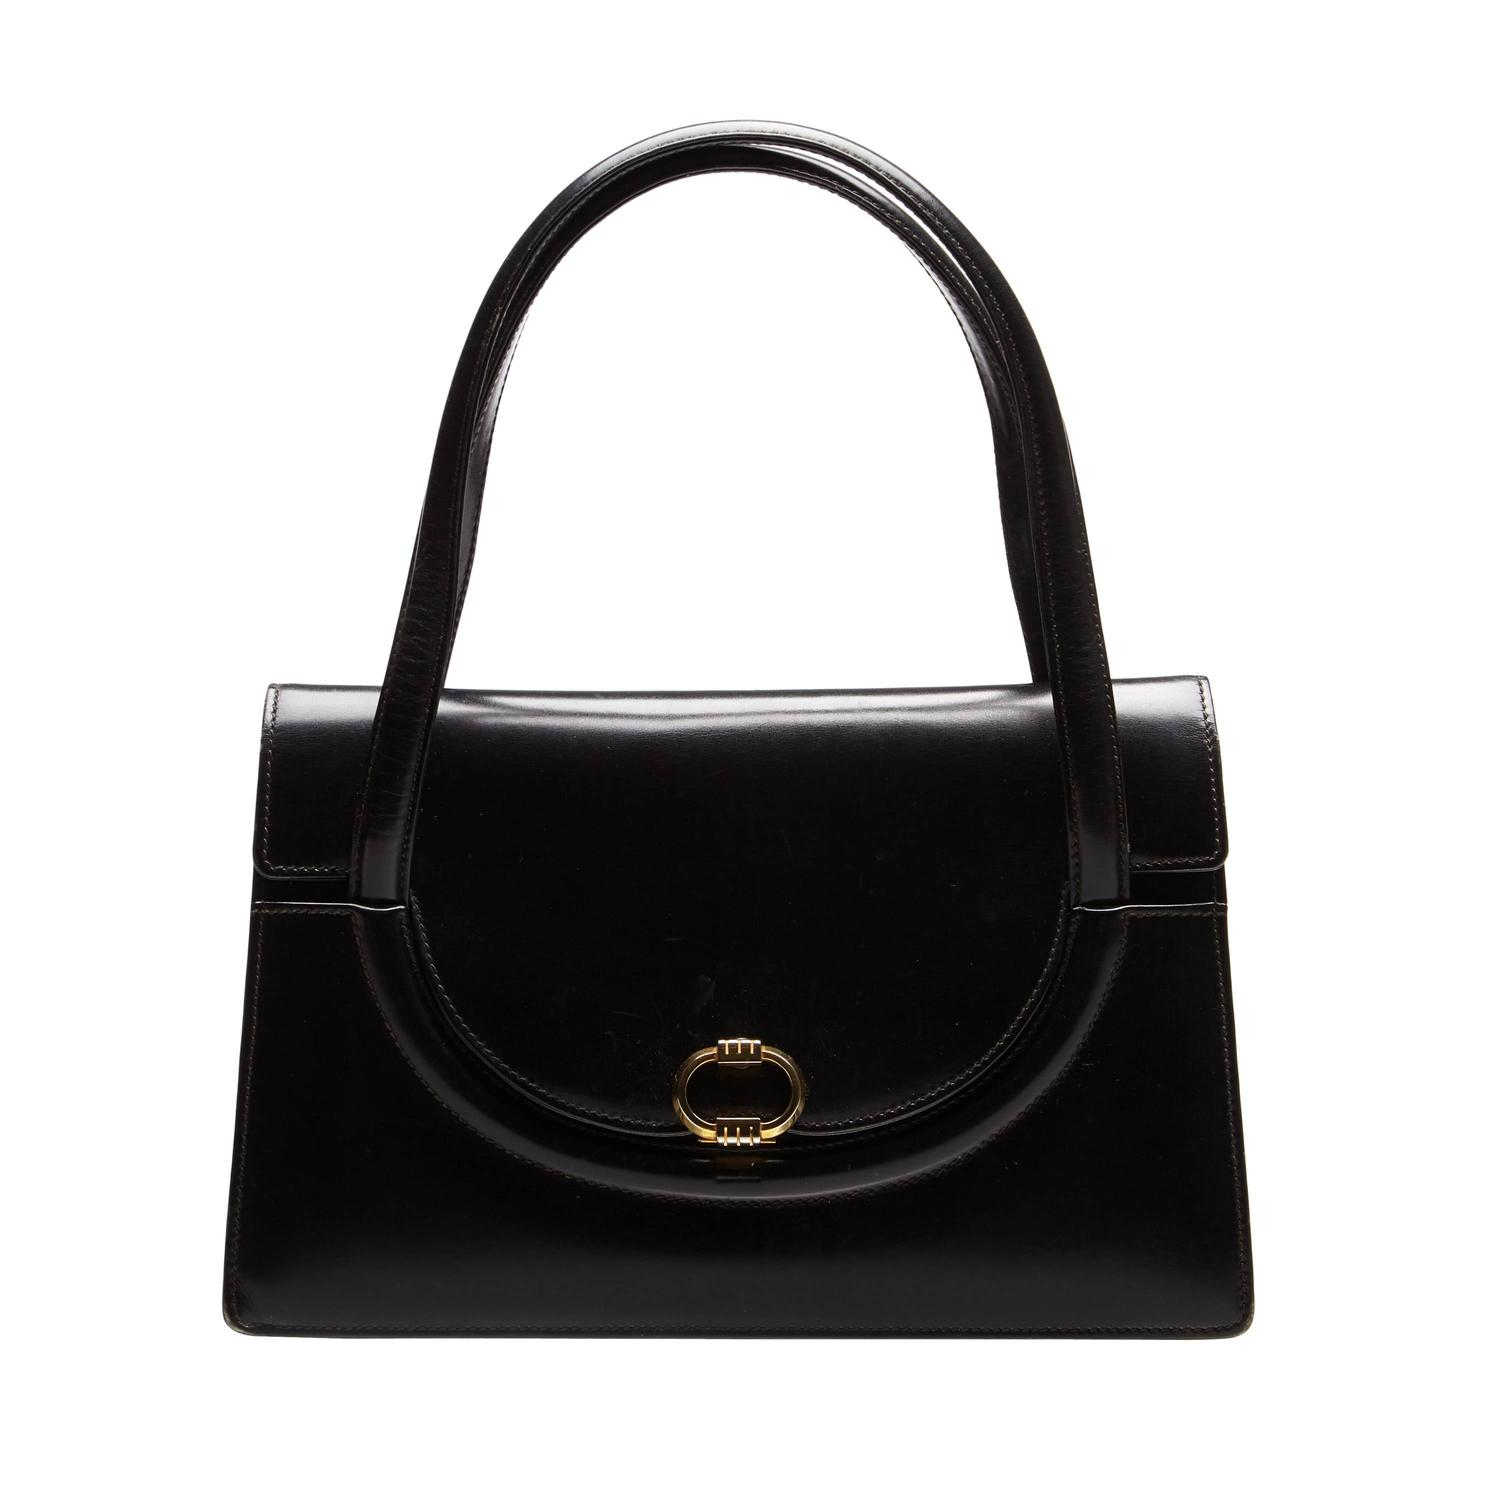 1960s black leather gucci bag at 1stdibs